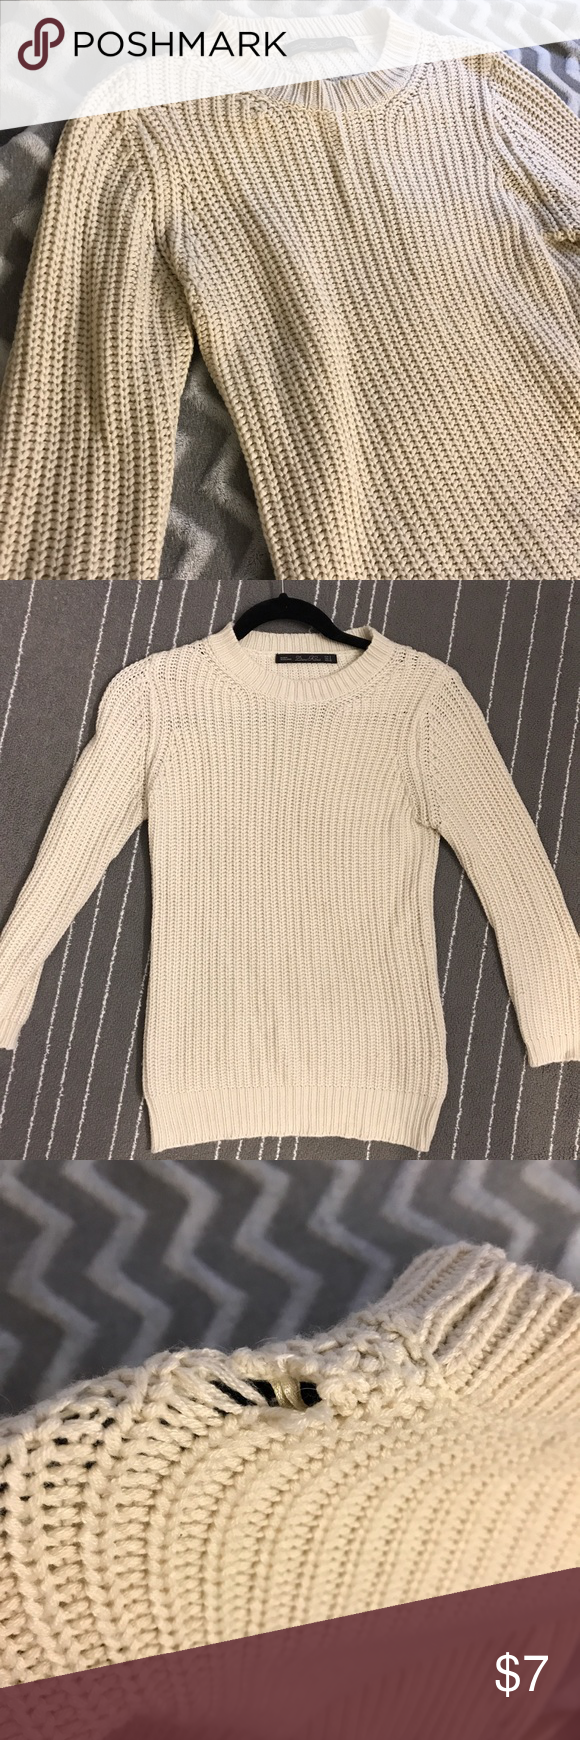 Zara White Knit Sweater w/ mid length sleeves | White knit sweater ...